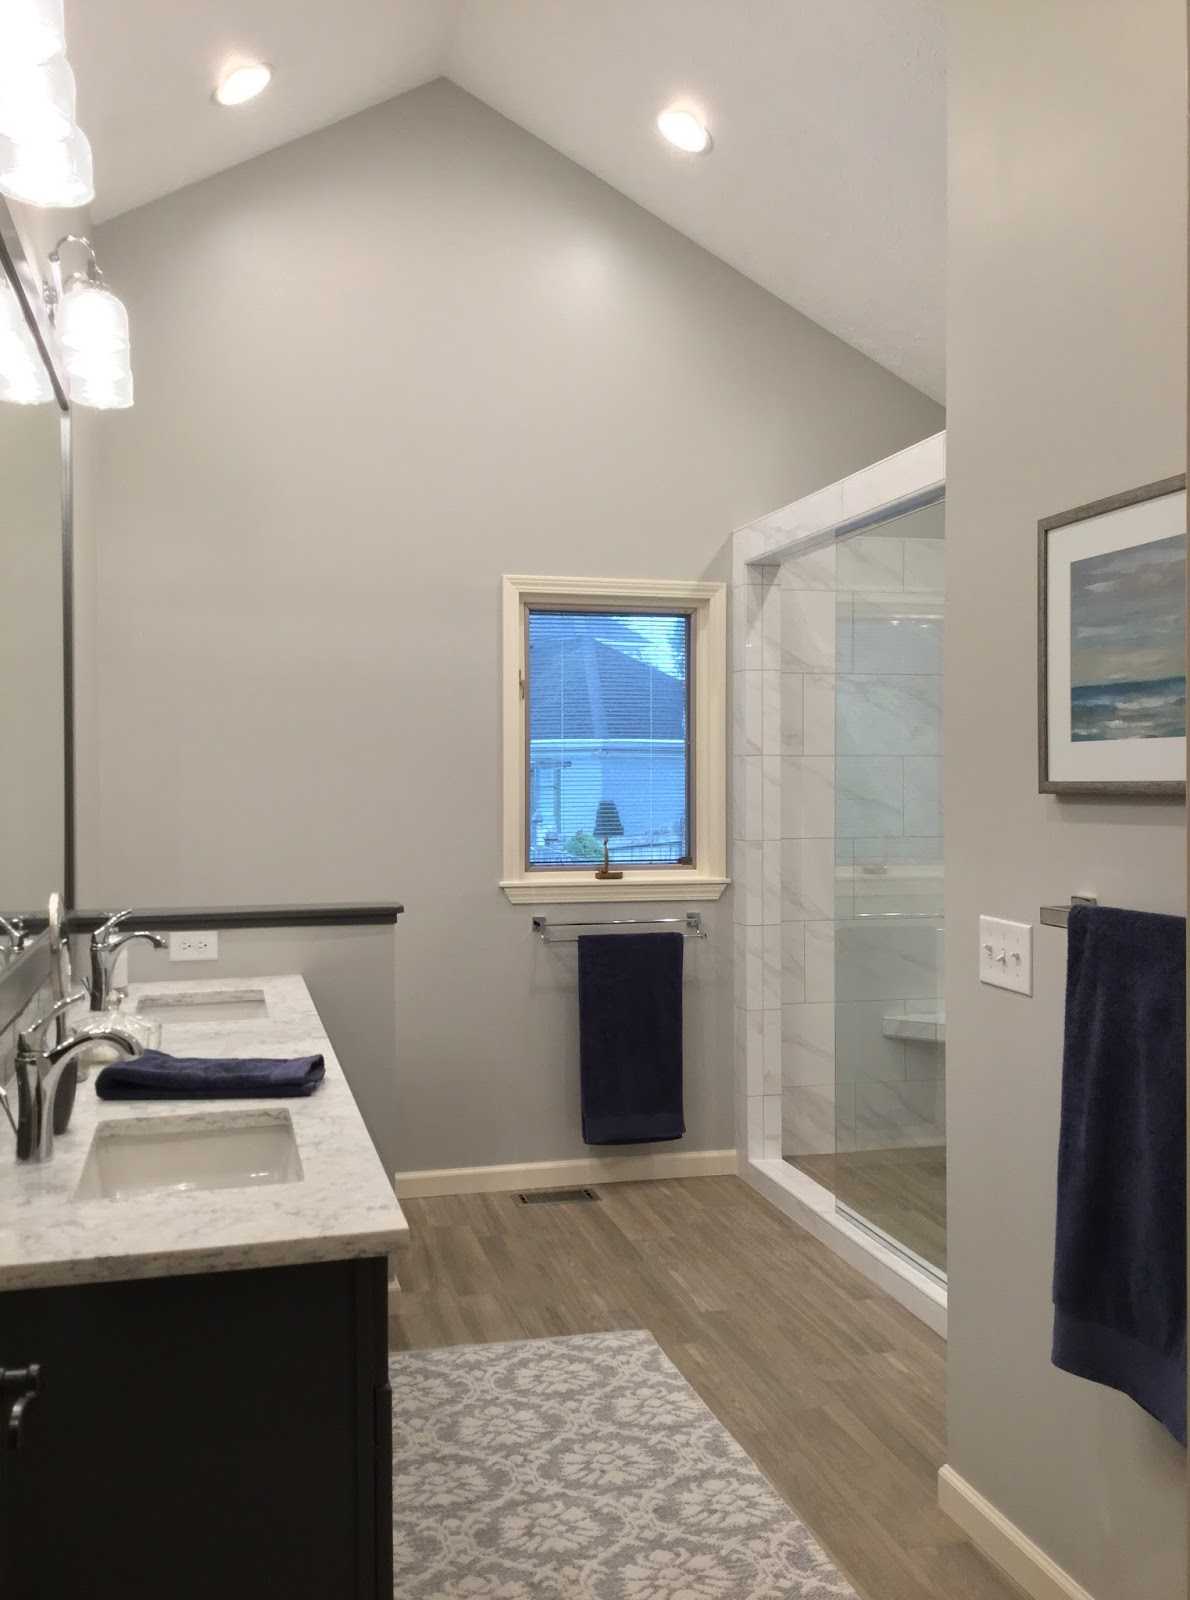 Cool Hope you enjoyed seeing this Master Bathroom en suite renovation e to life Onto the next project